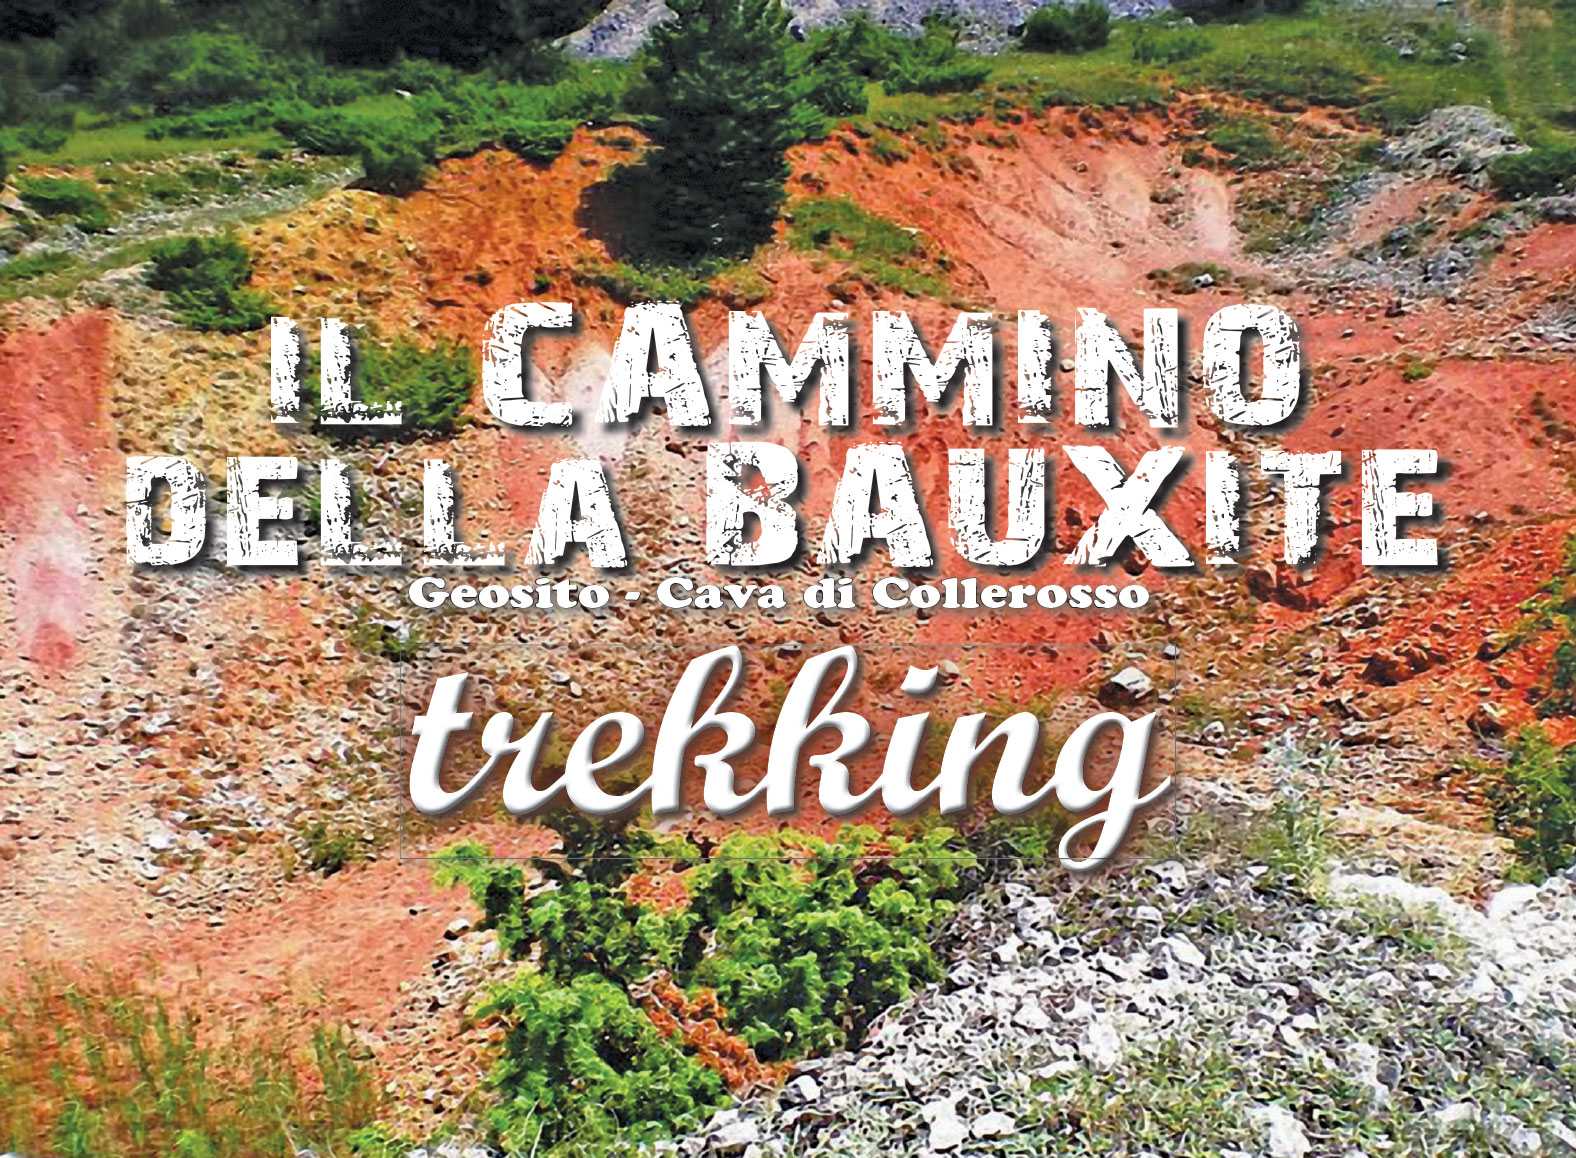 Il cammino della bauxite